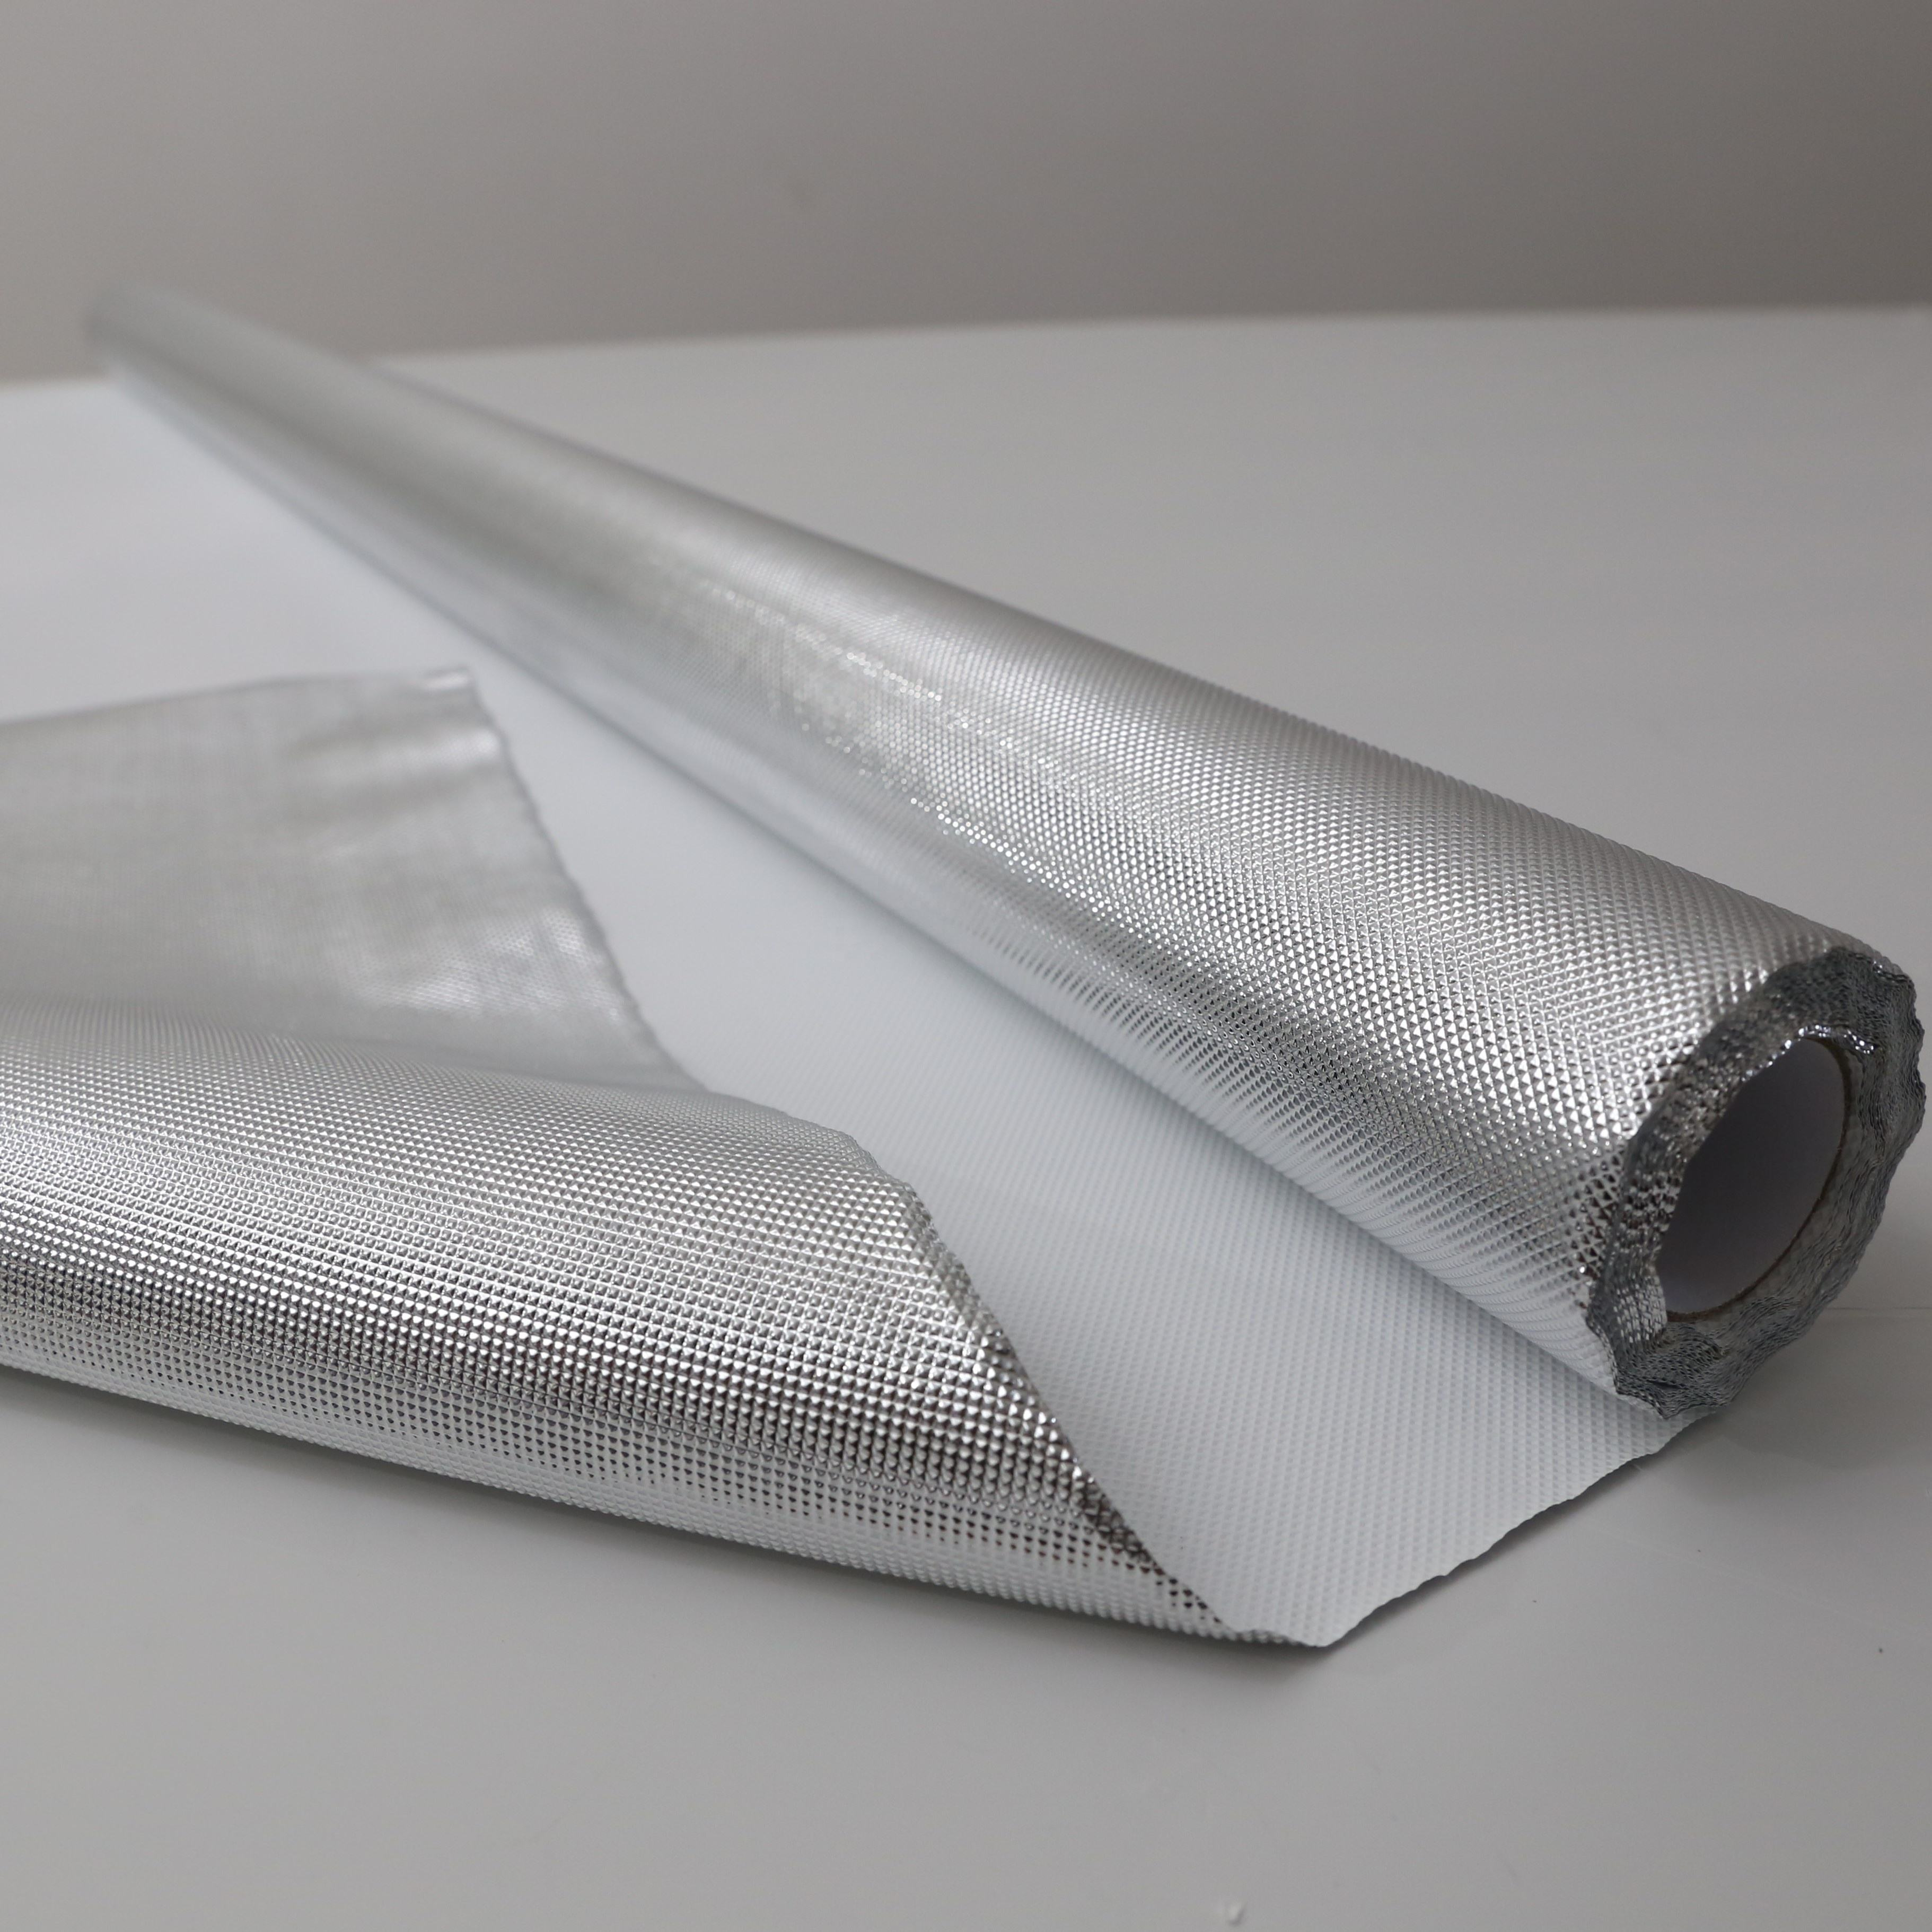 Silver Mylar on White or Black PE Backing Diamond Reflective Grow Sheet for hydroponic